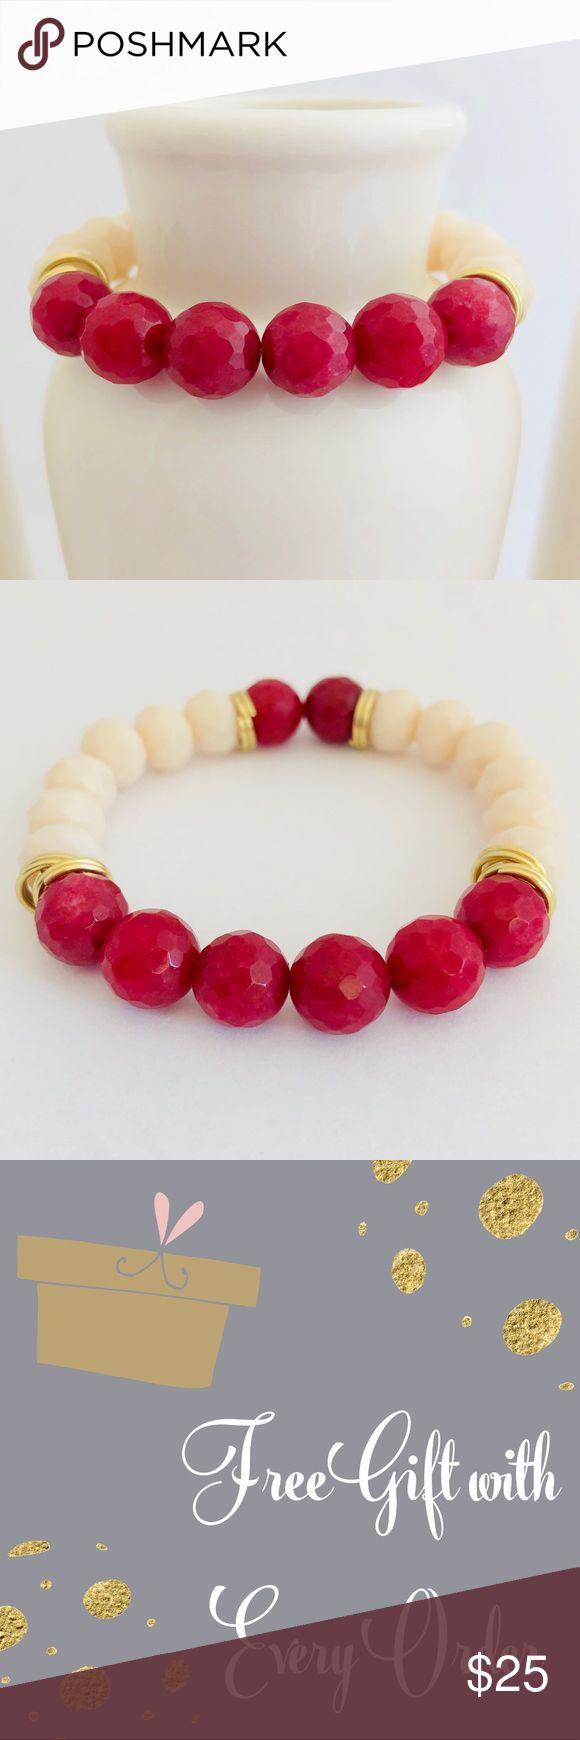 Handmade Red Agate Beaded Bracelet This unique Red Agate bracelet is all you need to complete your look for any occasion on a daily basis. It is elegant and sophisticated for the everyday classy woman.   SIZING and MEASUREMENTS:  • Agate bead size: 10mm  • SMALL: 6 in • MEDIUM: 7 in • LARGE: 8 in  • CUSTOM SIZING: If you need a different size, let me know your size upon checkout   Each bracelet is authentically handmade by me in my home craft studio. FREE GIFT WITH EVERY ORDER! Handmade…